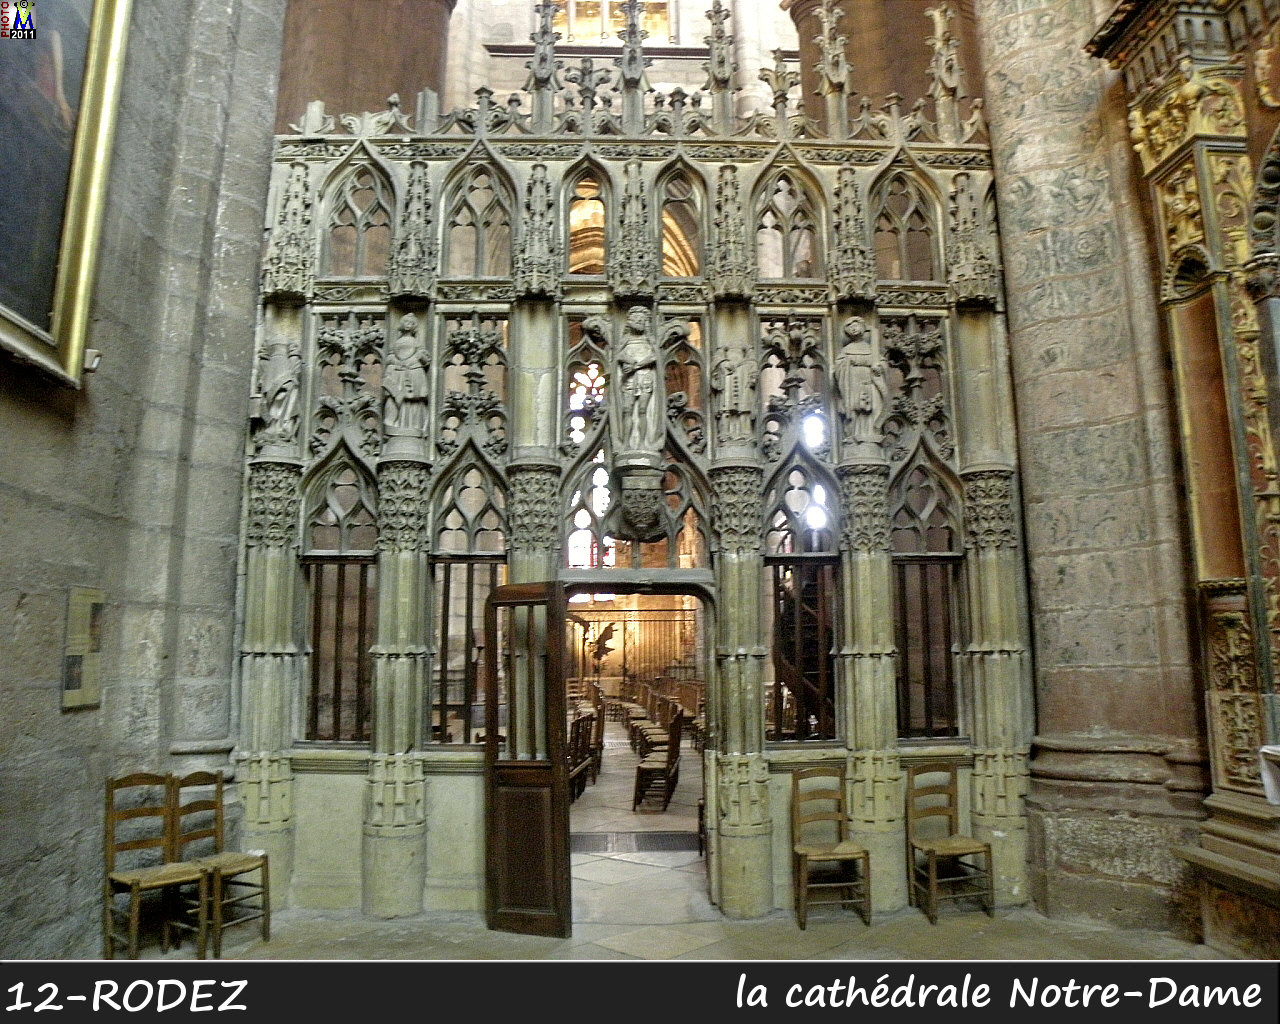 12RODEZ_cathedrale_284.jpg